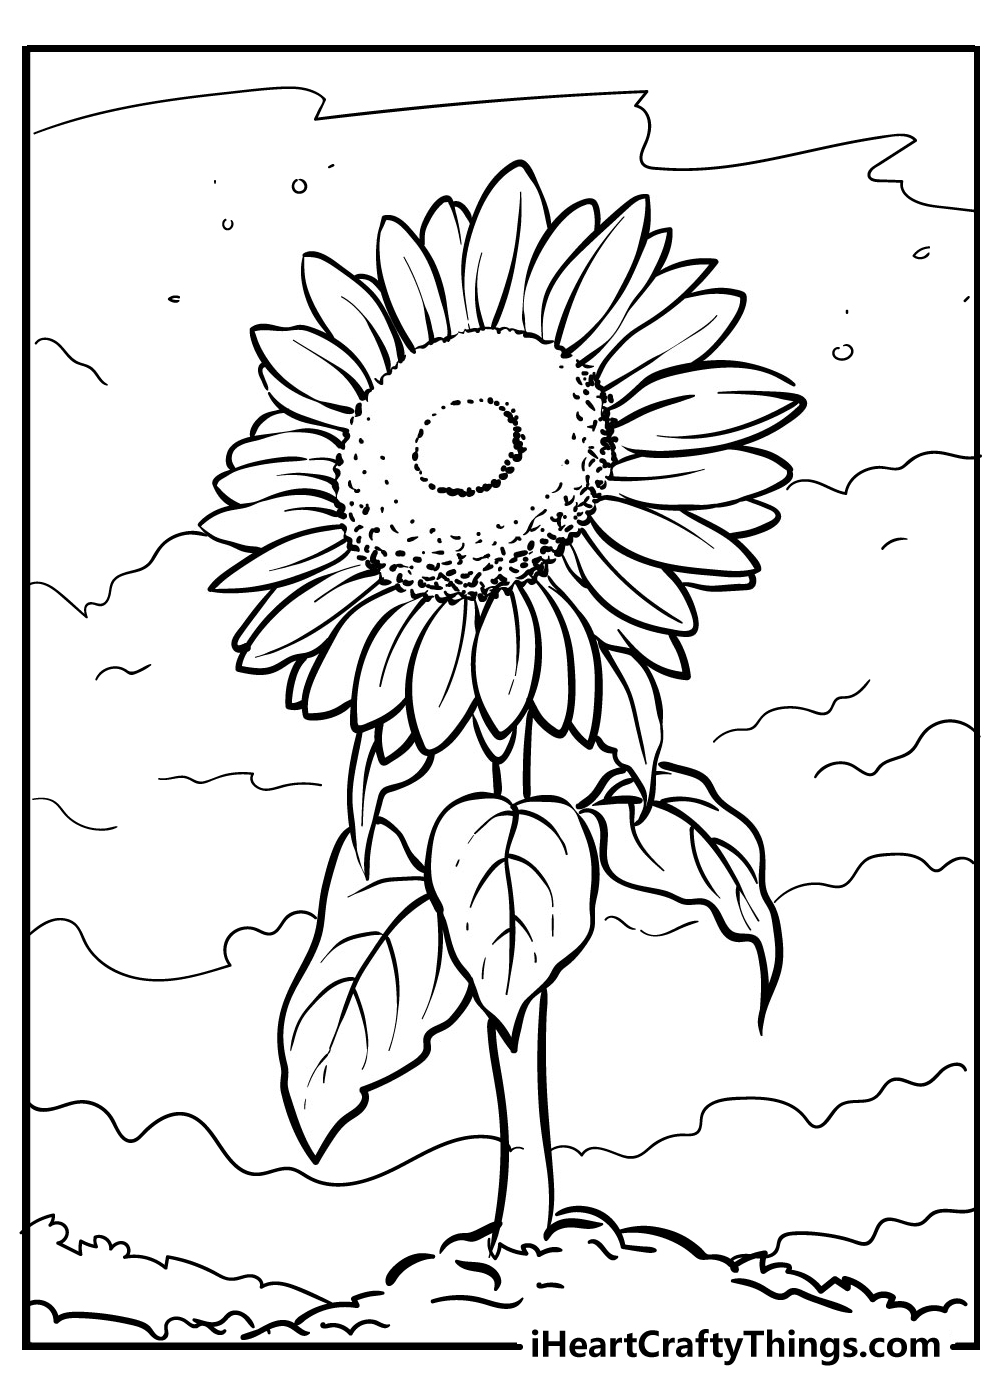 free printable sunflower coloring images for kids